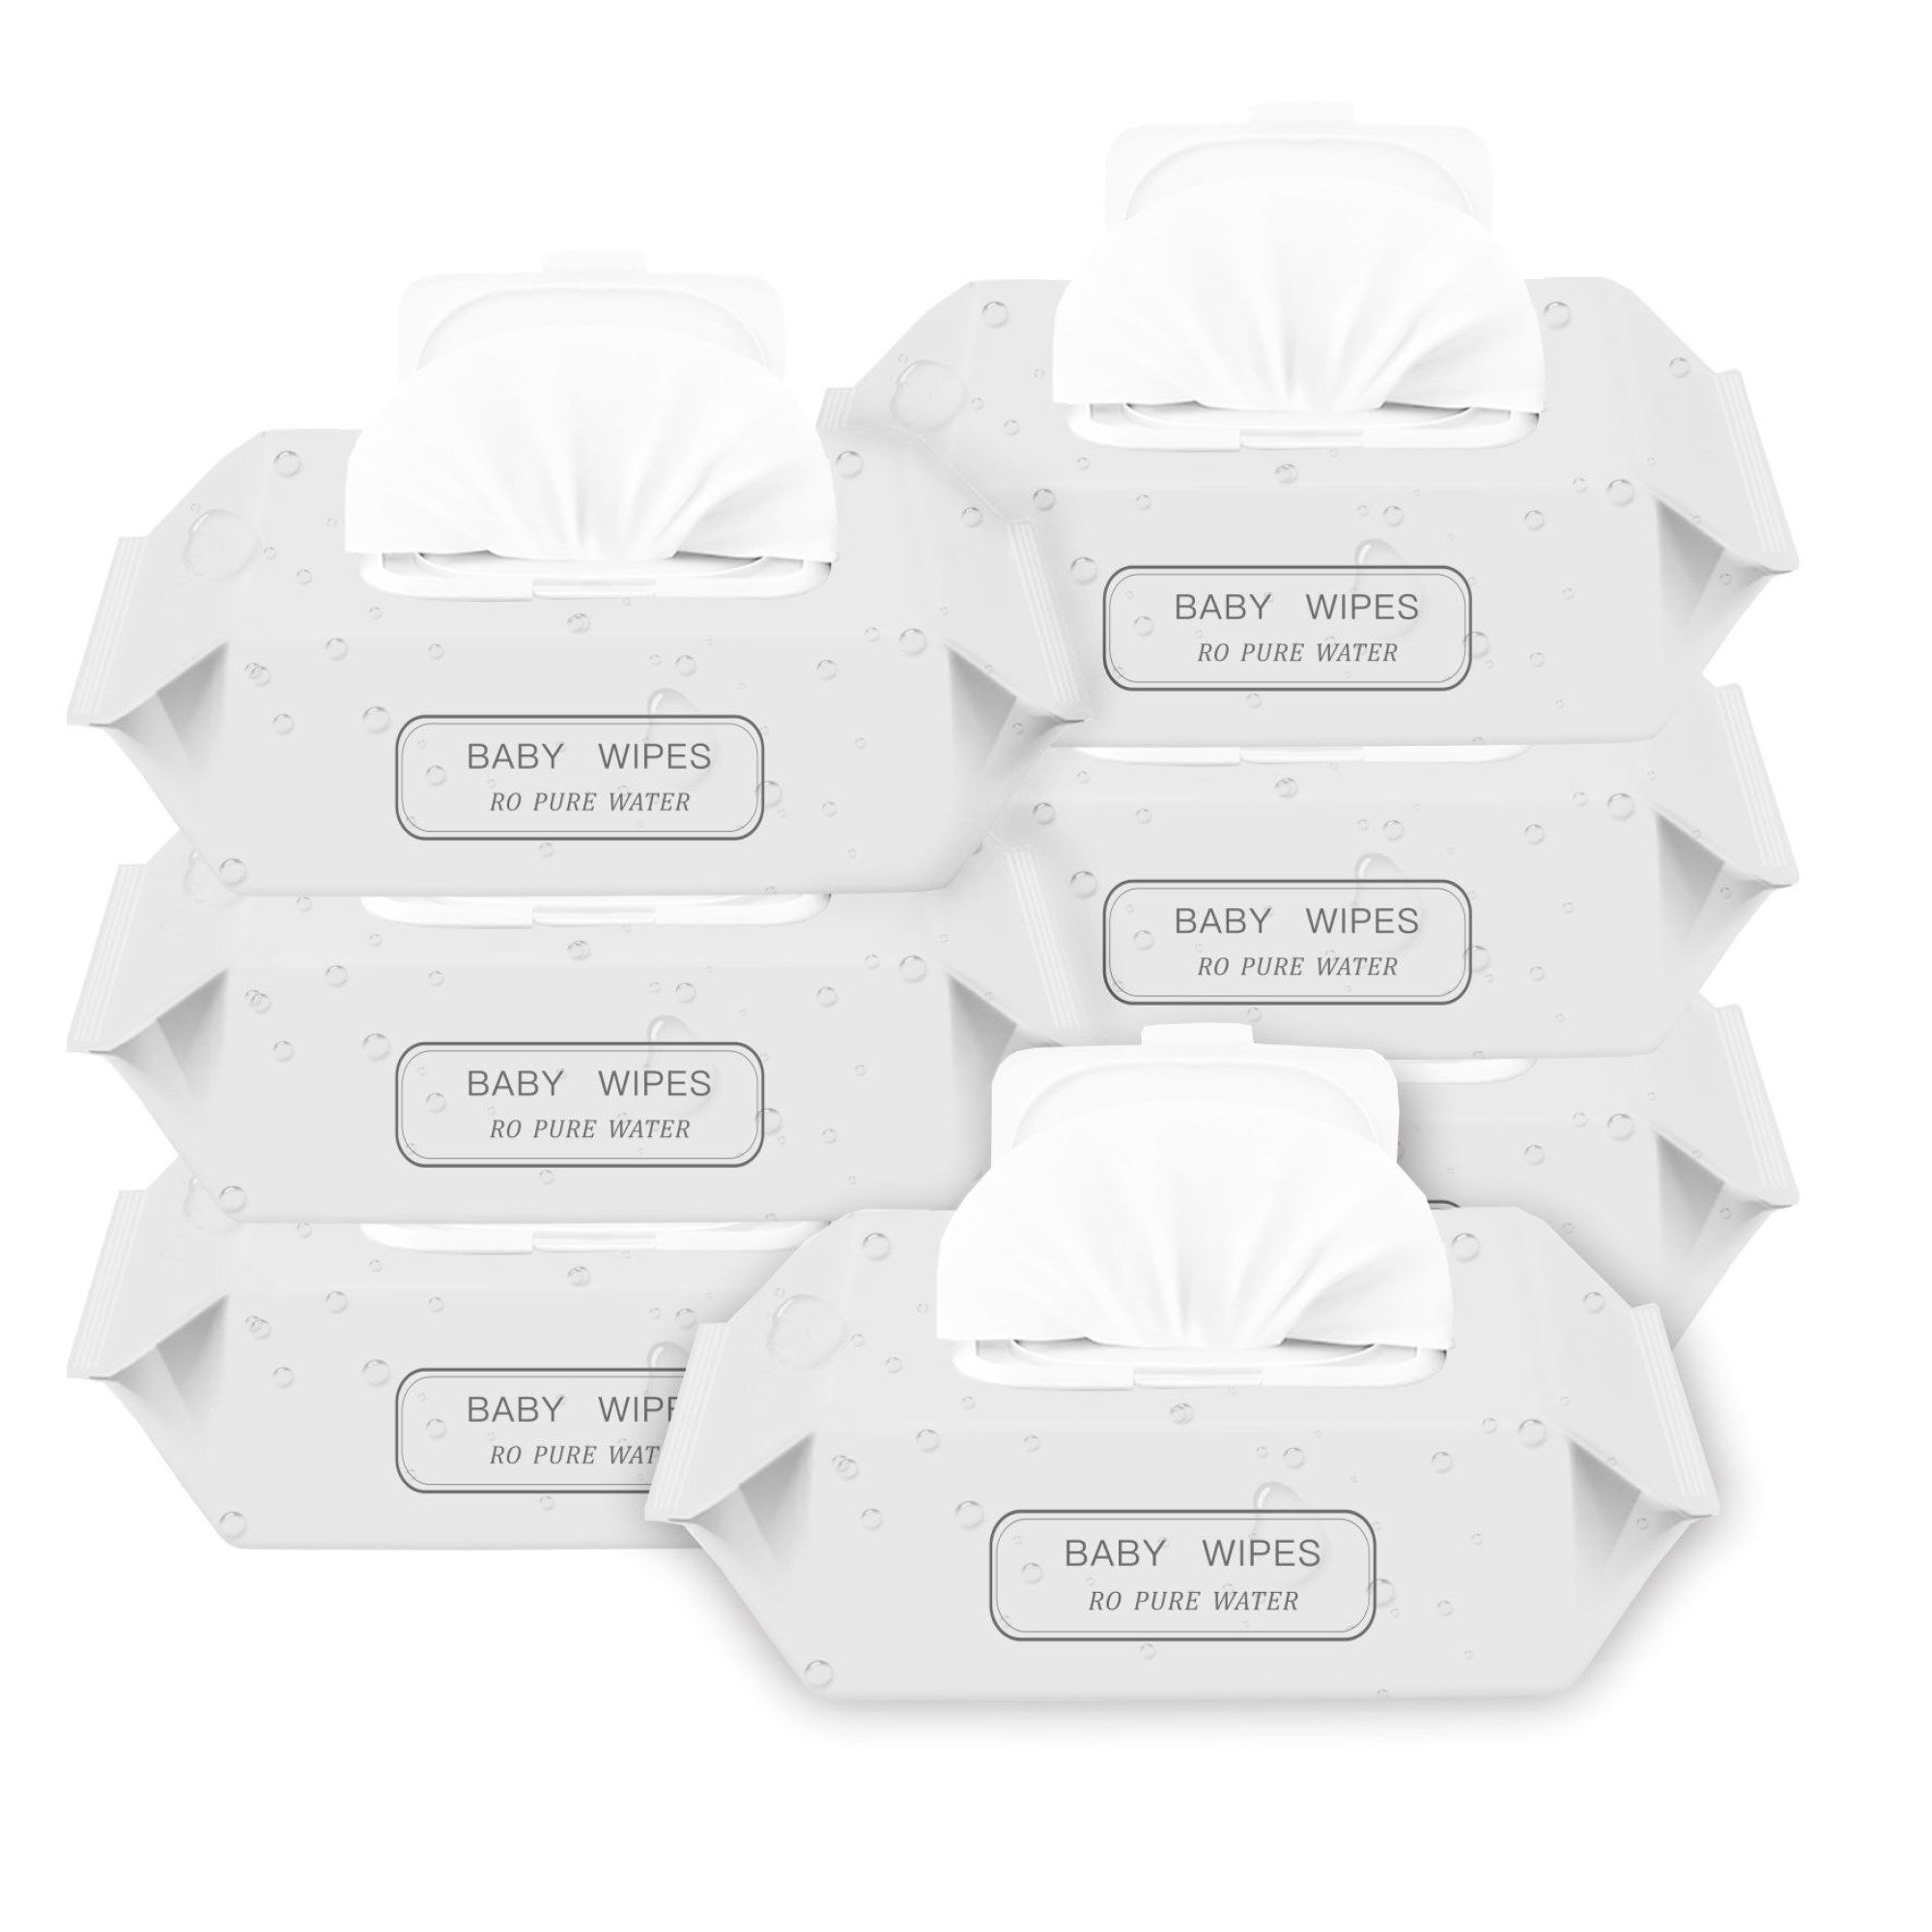 Moosee Top wet tissue company for sale-1